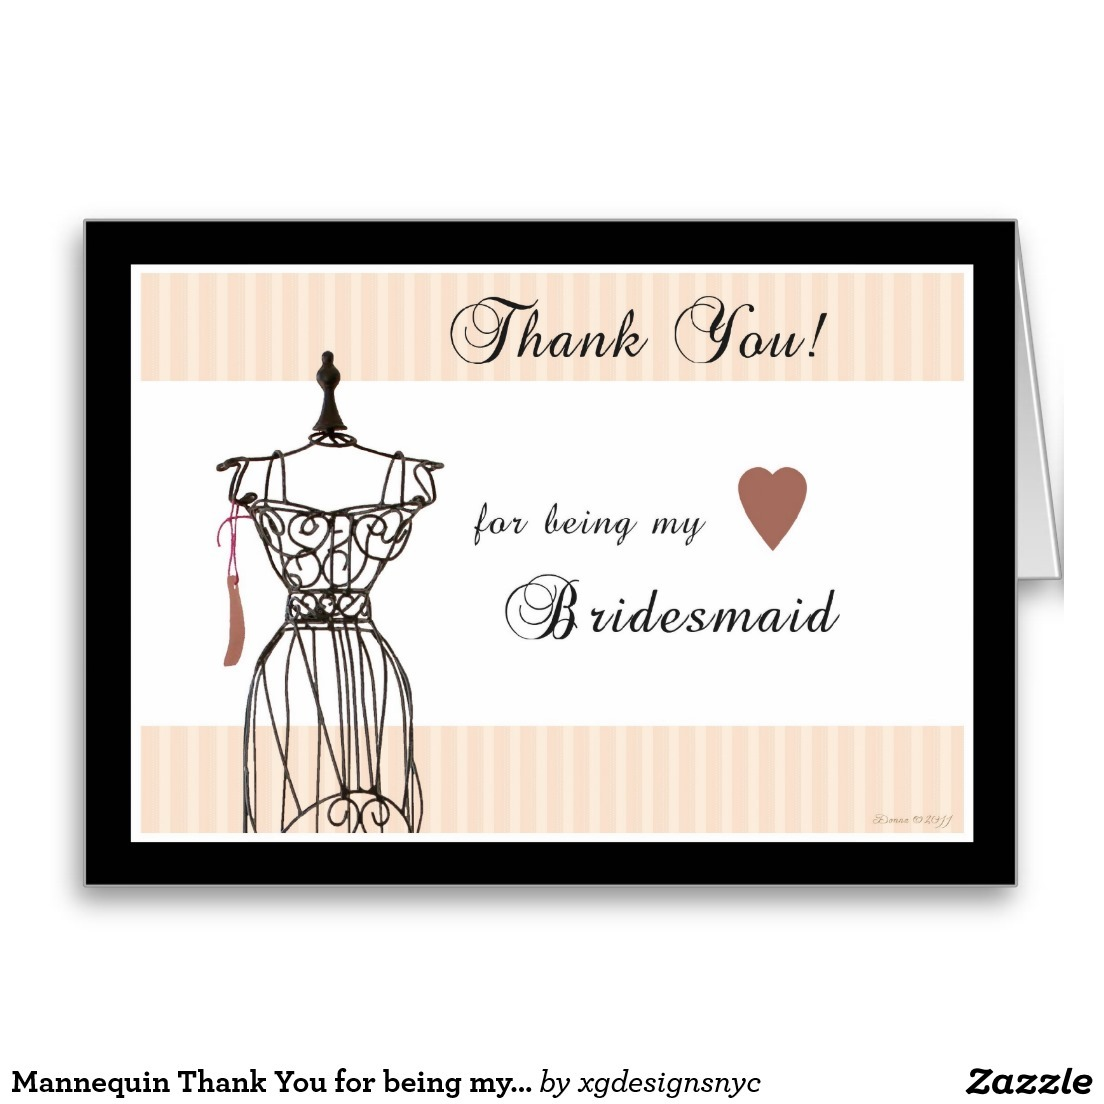 Xg designs nyc mannequin thank you for being my bridesmaid mannequin thank you for being my bridesmaid greeting card 400 made by zazzle greeting cards kristyandbryce Gallery